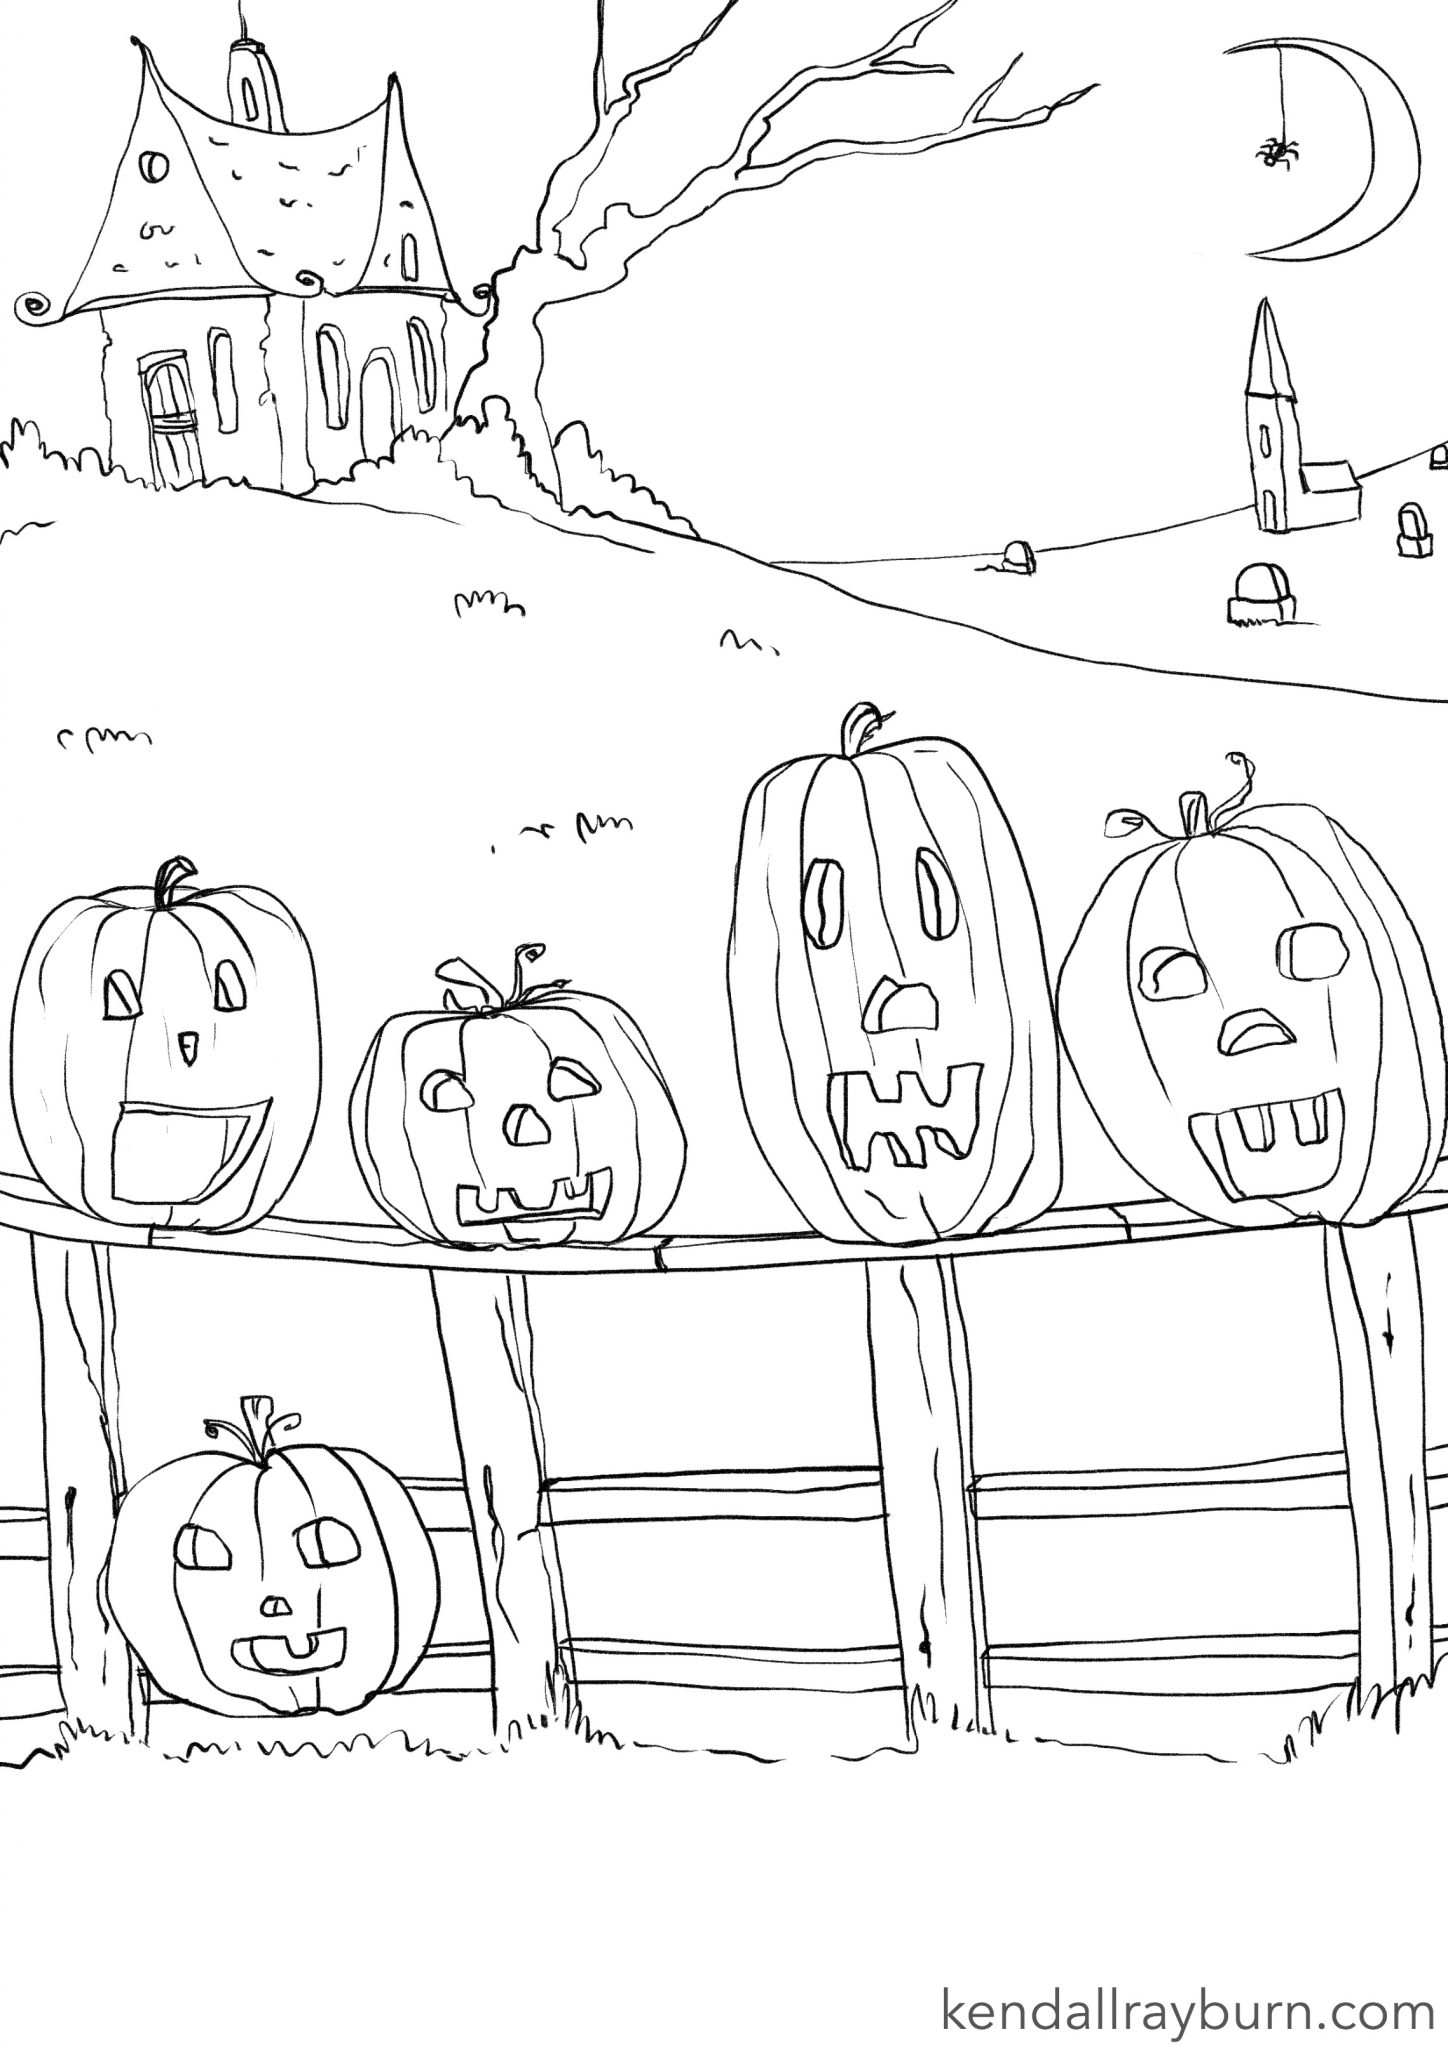 5 Little Pumpkins Coloring Sheet - #ColoringwithKR